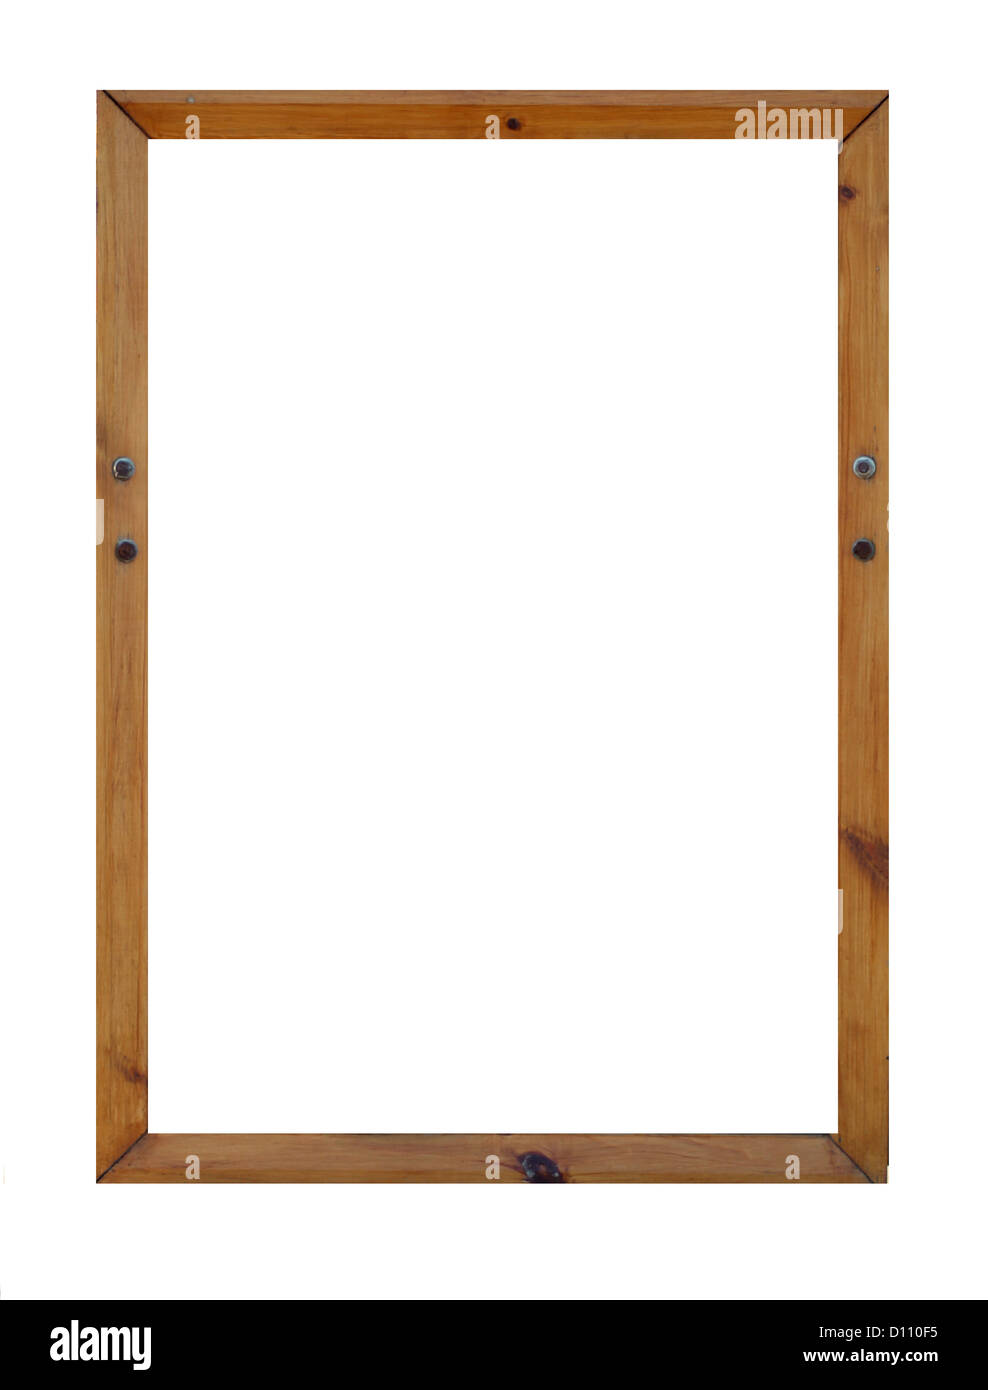 Blank wooden picture frame with copy space. - Stock Image